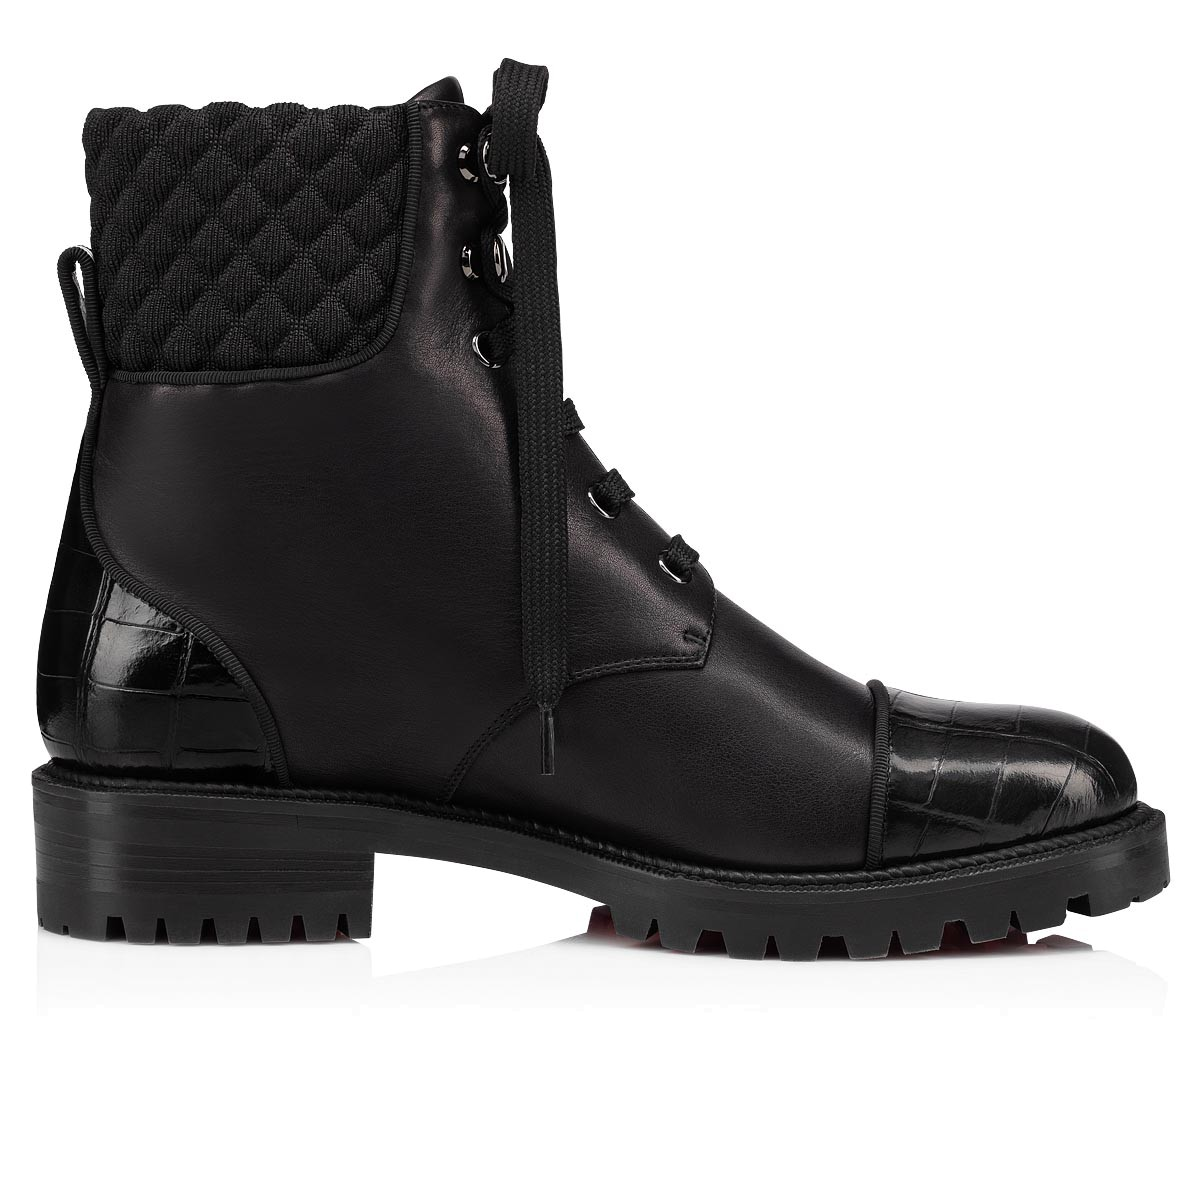 Shoes - Mayr Boot - Christian Louboutin